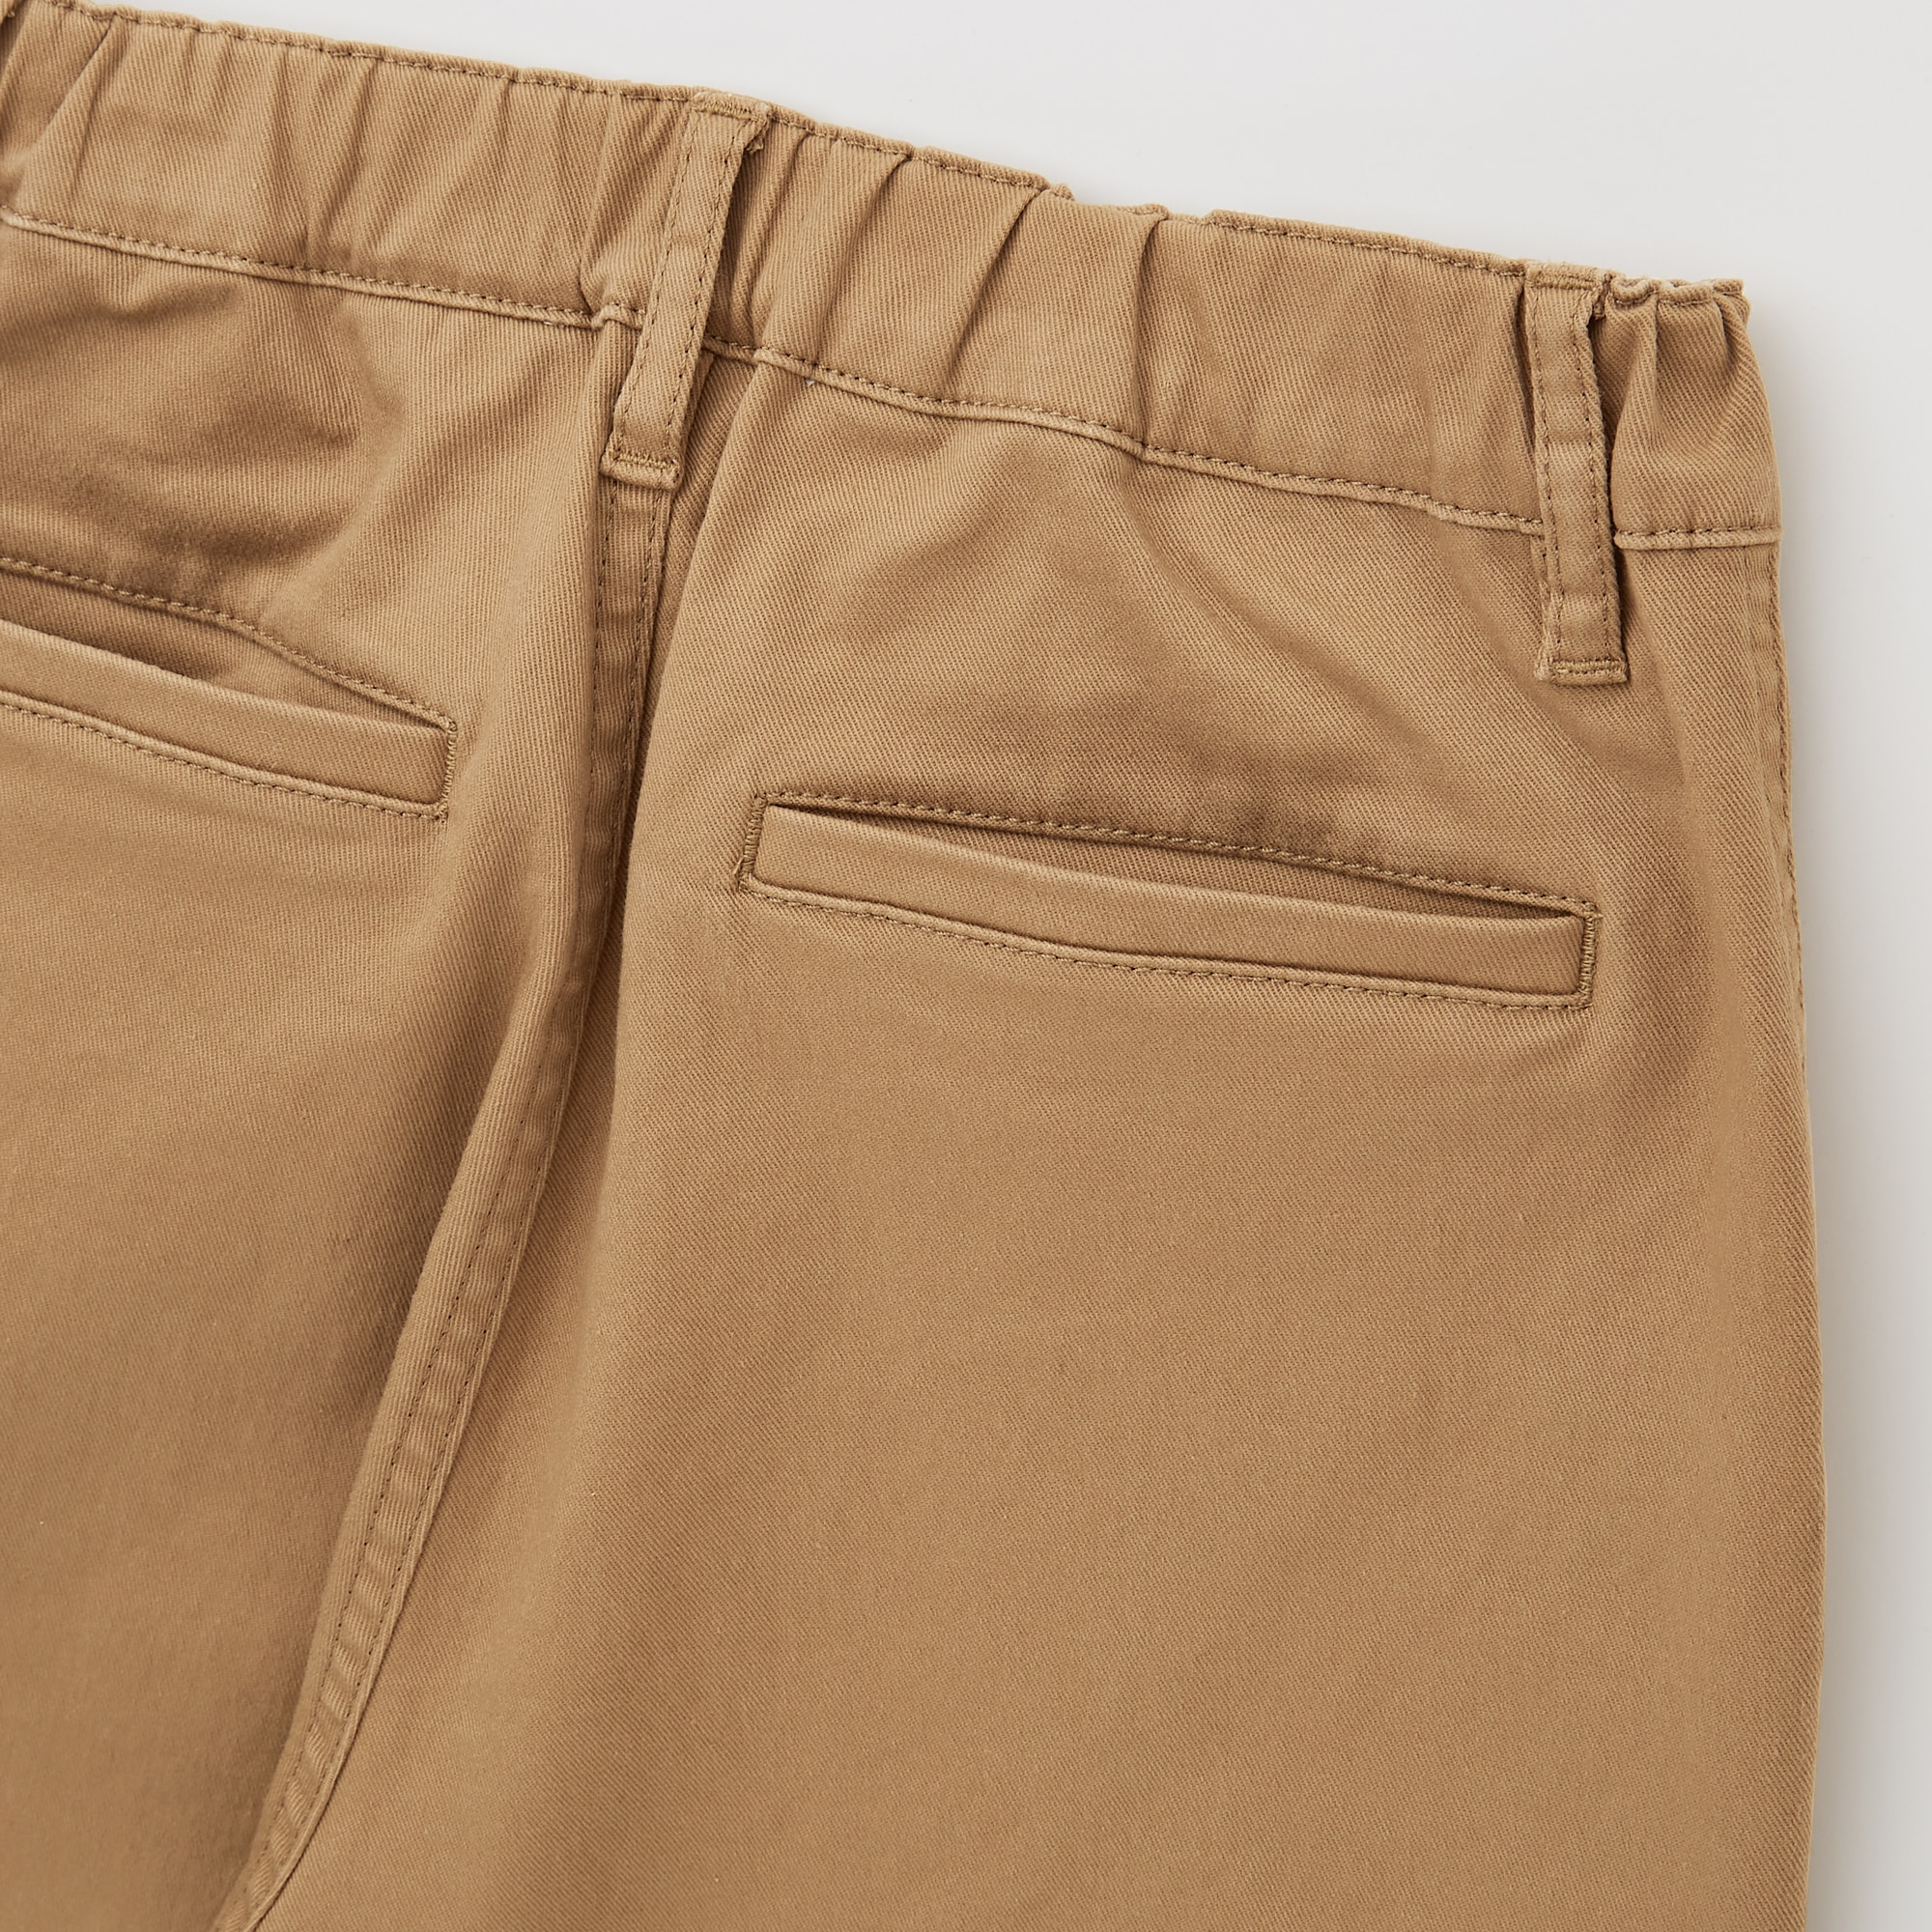 Uniqlo KIDS ULTRA STRETCH REGULAR-FIT ZIP-FLY CHINO PANTS (ONLINE EXCLUSIVE)